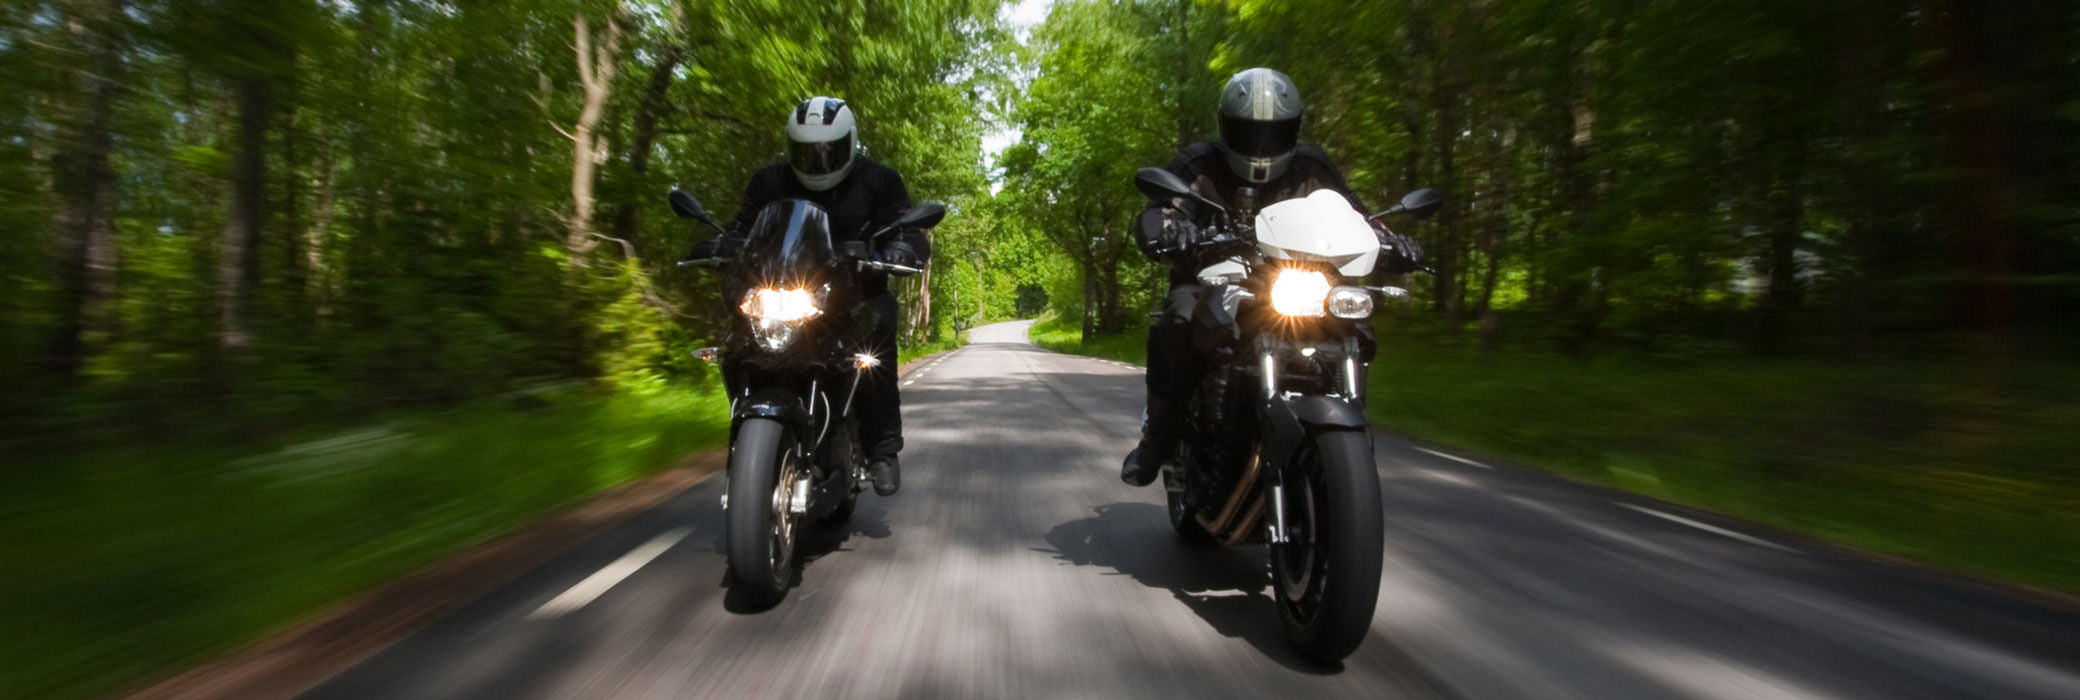 A guy in black riding his black motorcylce on a country road with trees at the sides